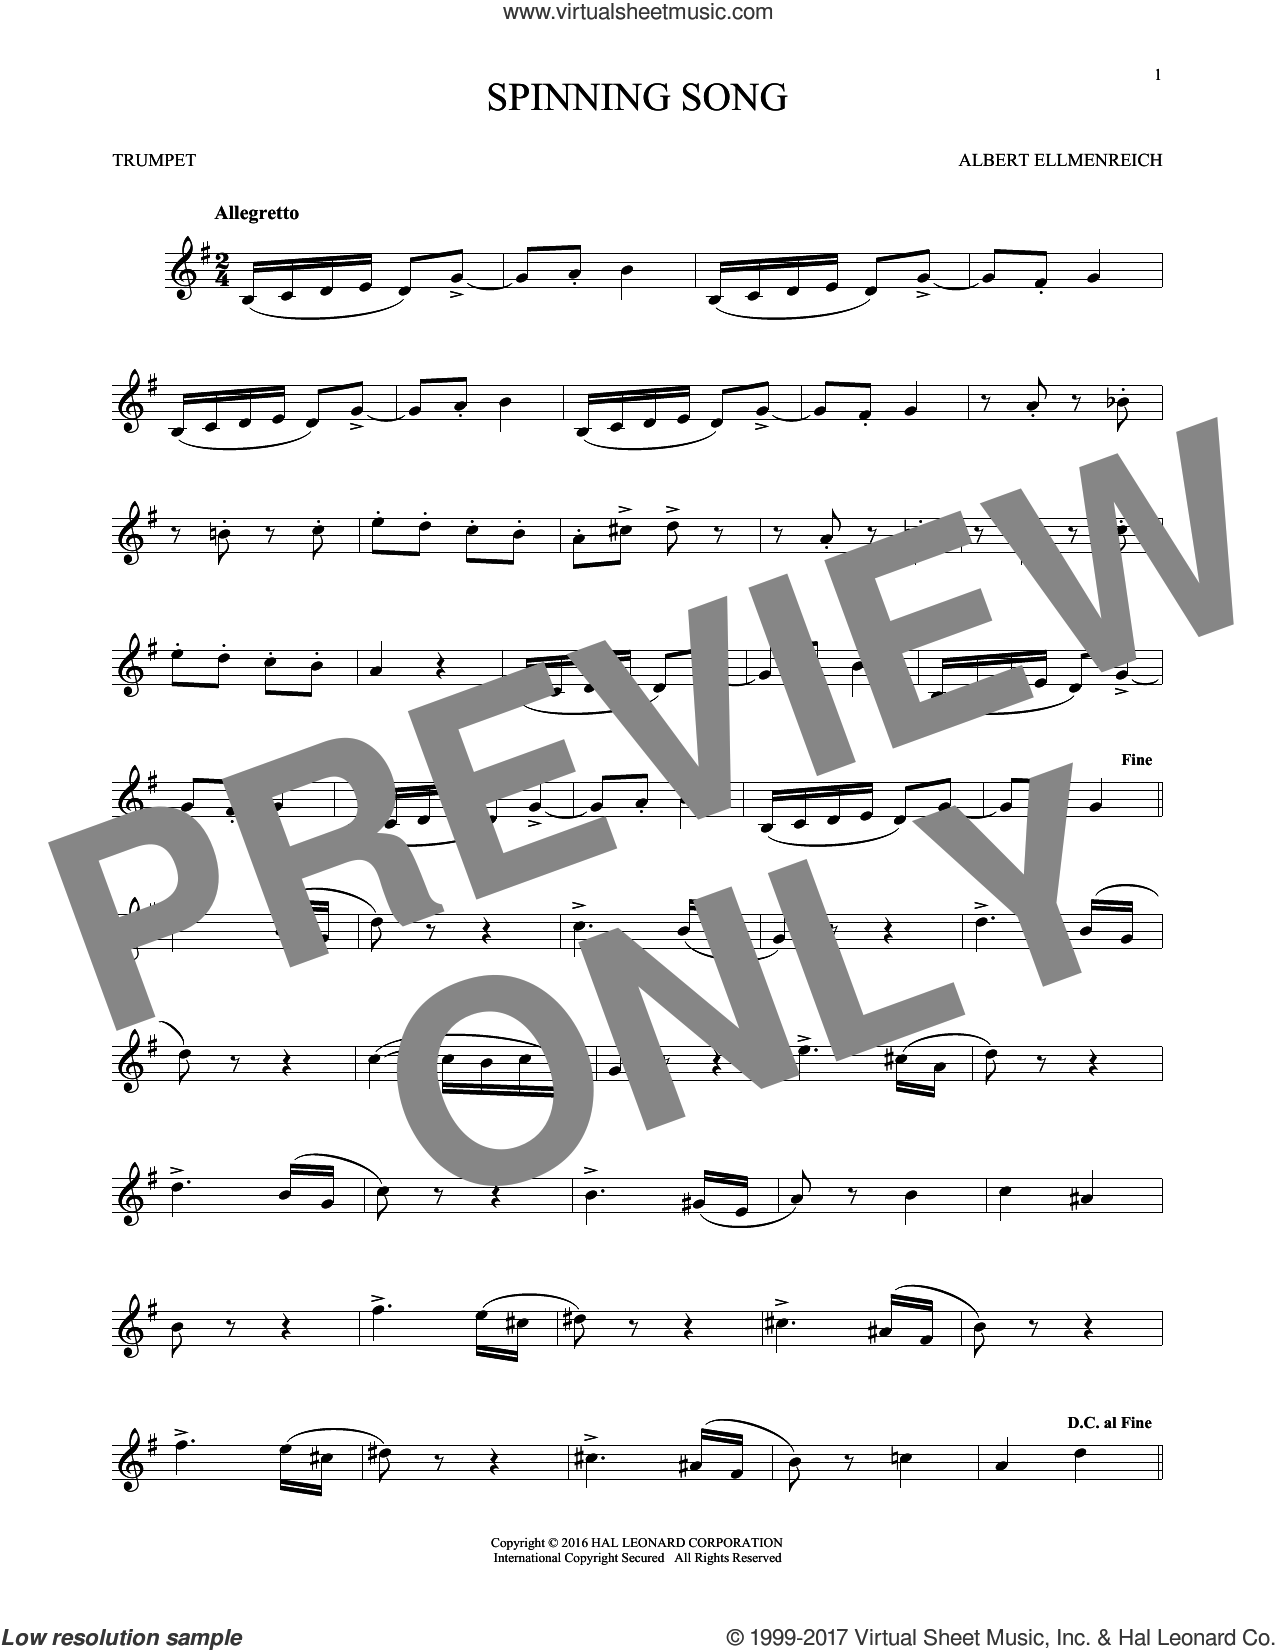 Spinning Song sheet music for trumpet solo by Albert Ellmenreich, classical score, intermediate skill level